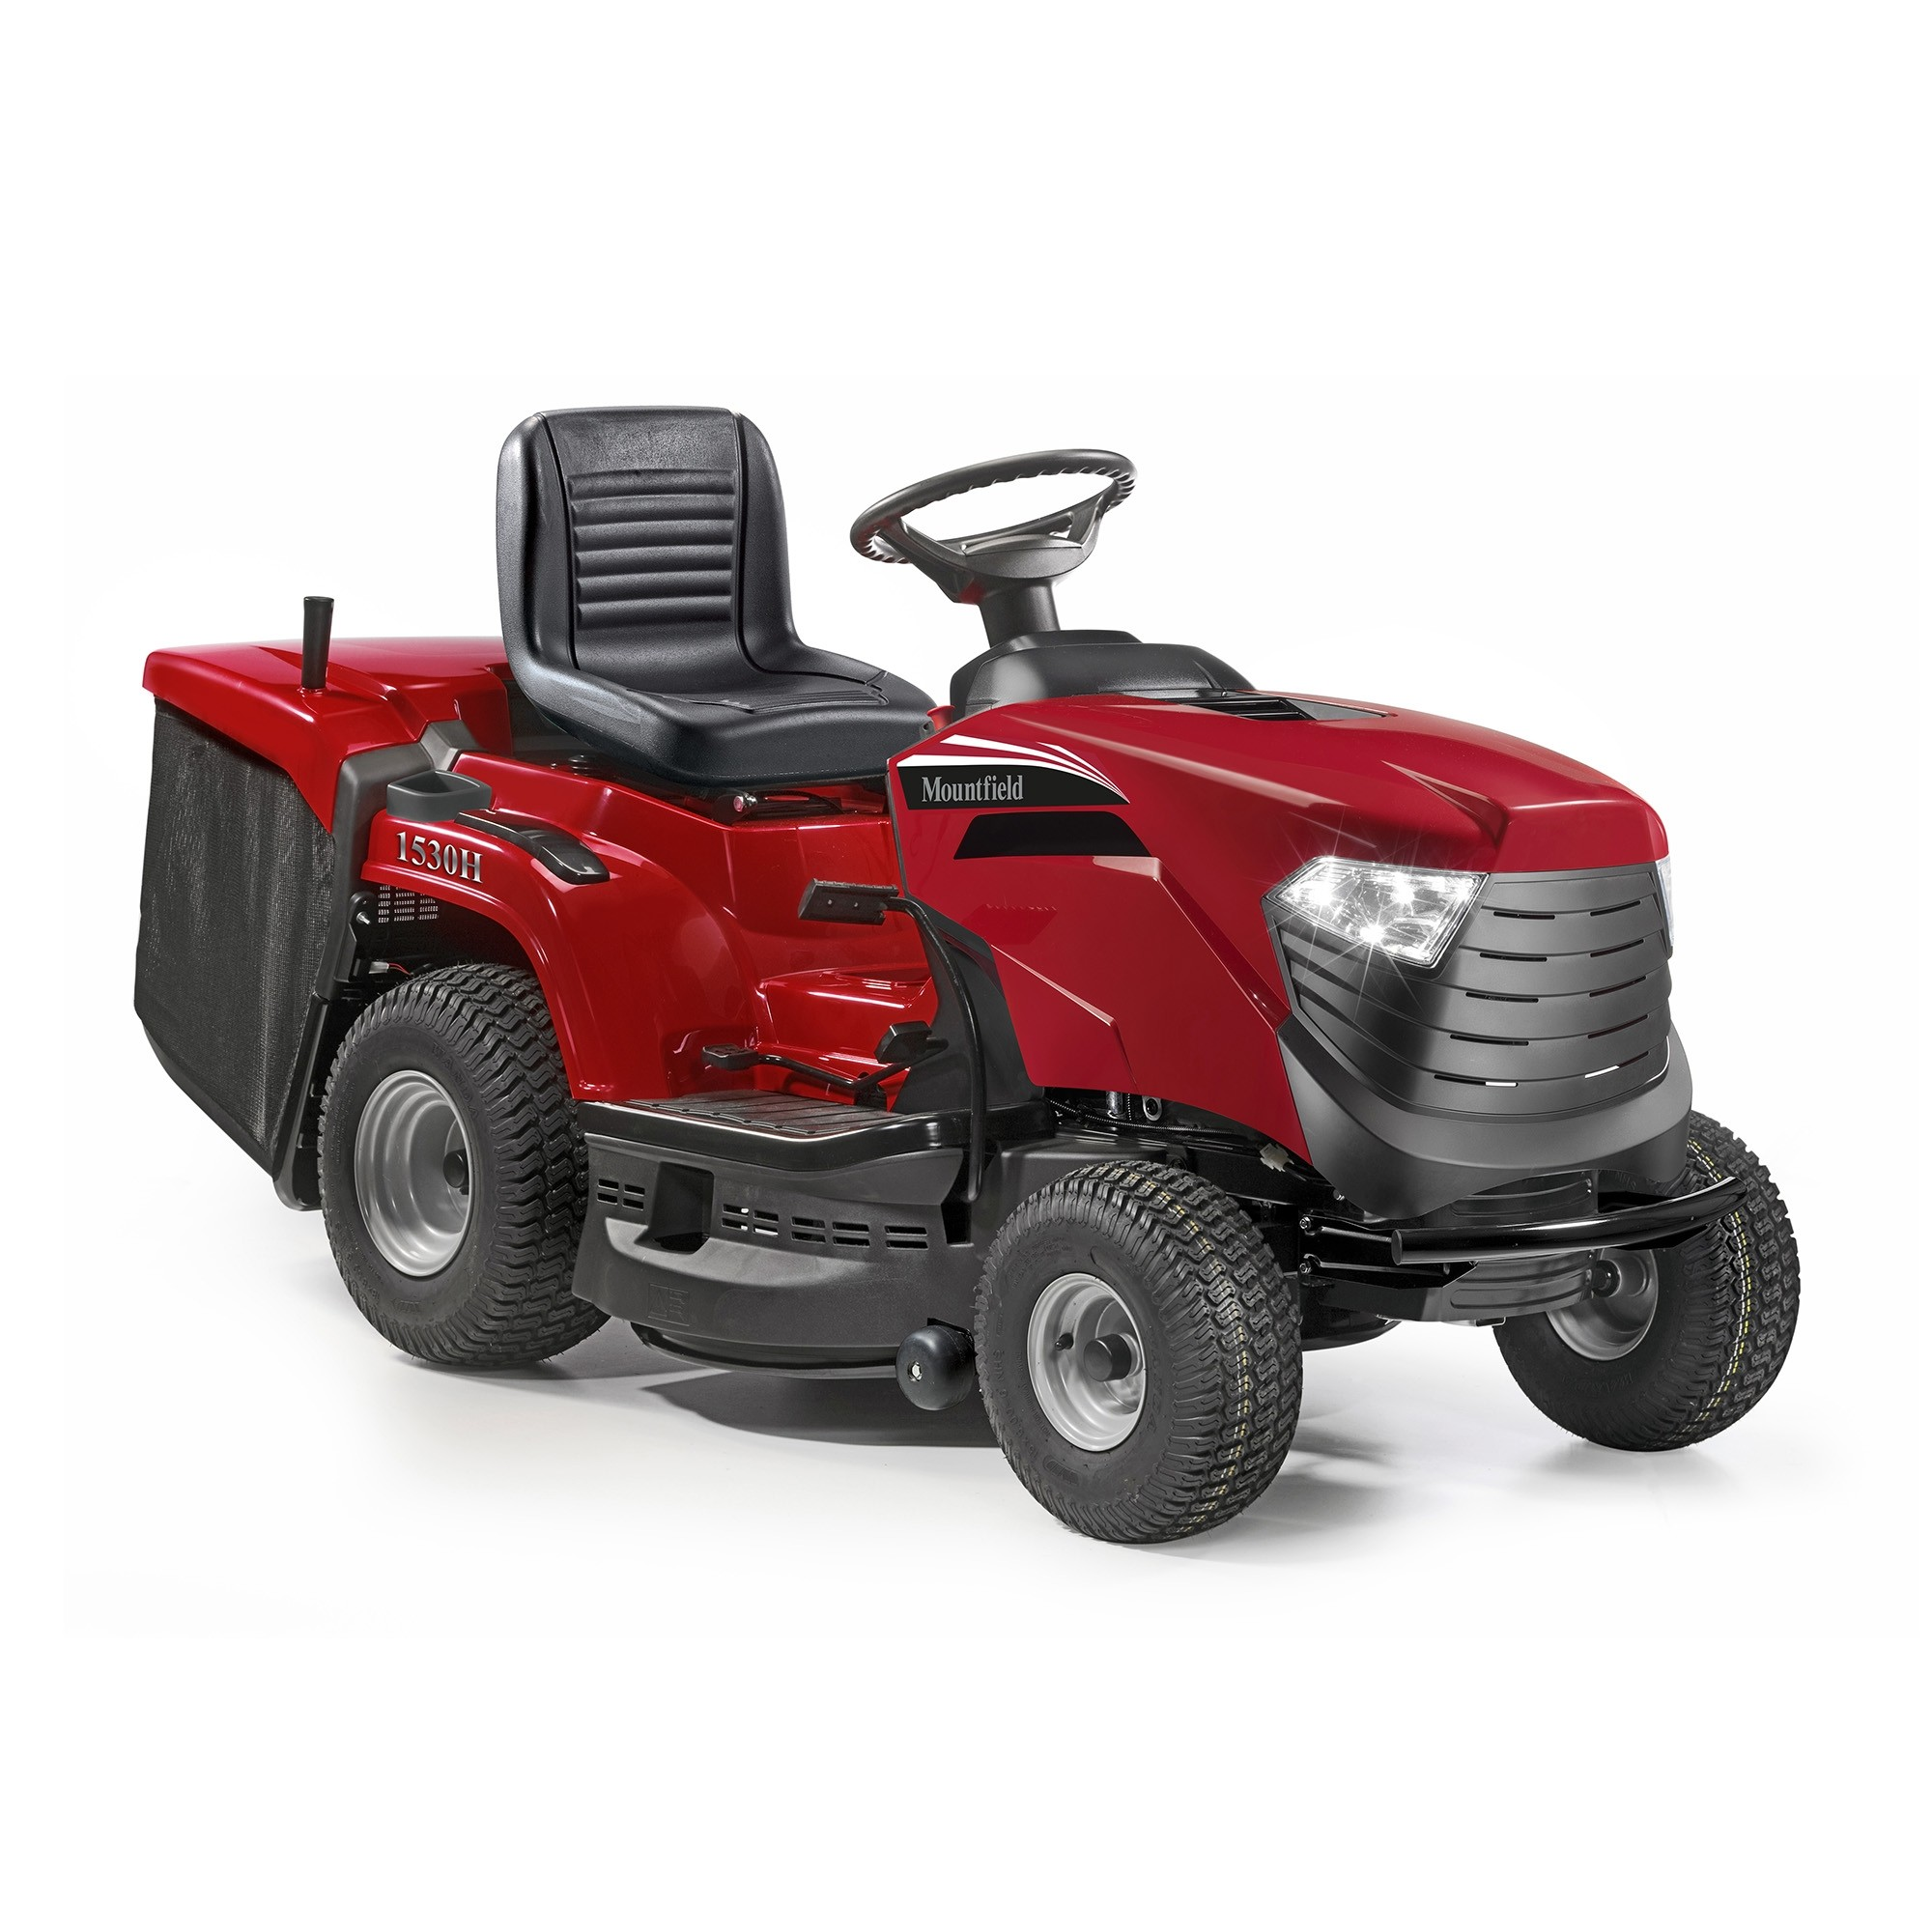 MOUNTFIELD 1530H 33 Inch Lawn Tractor